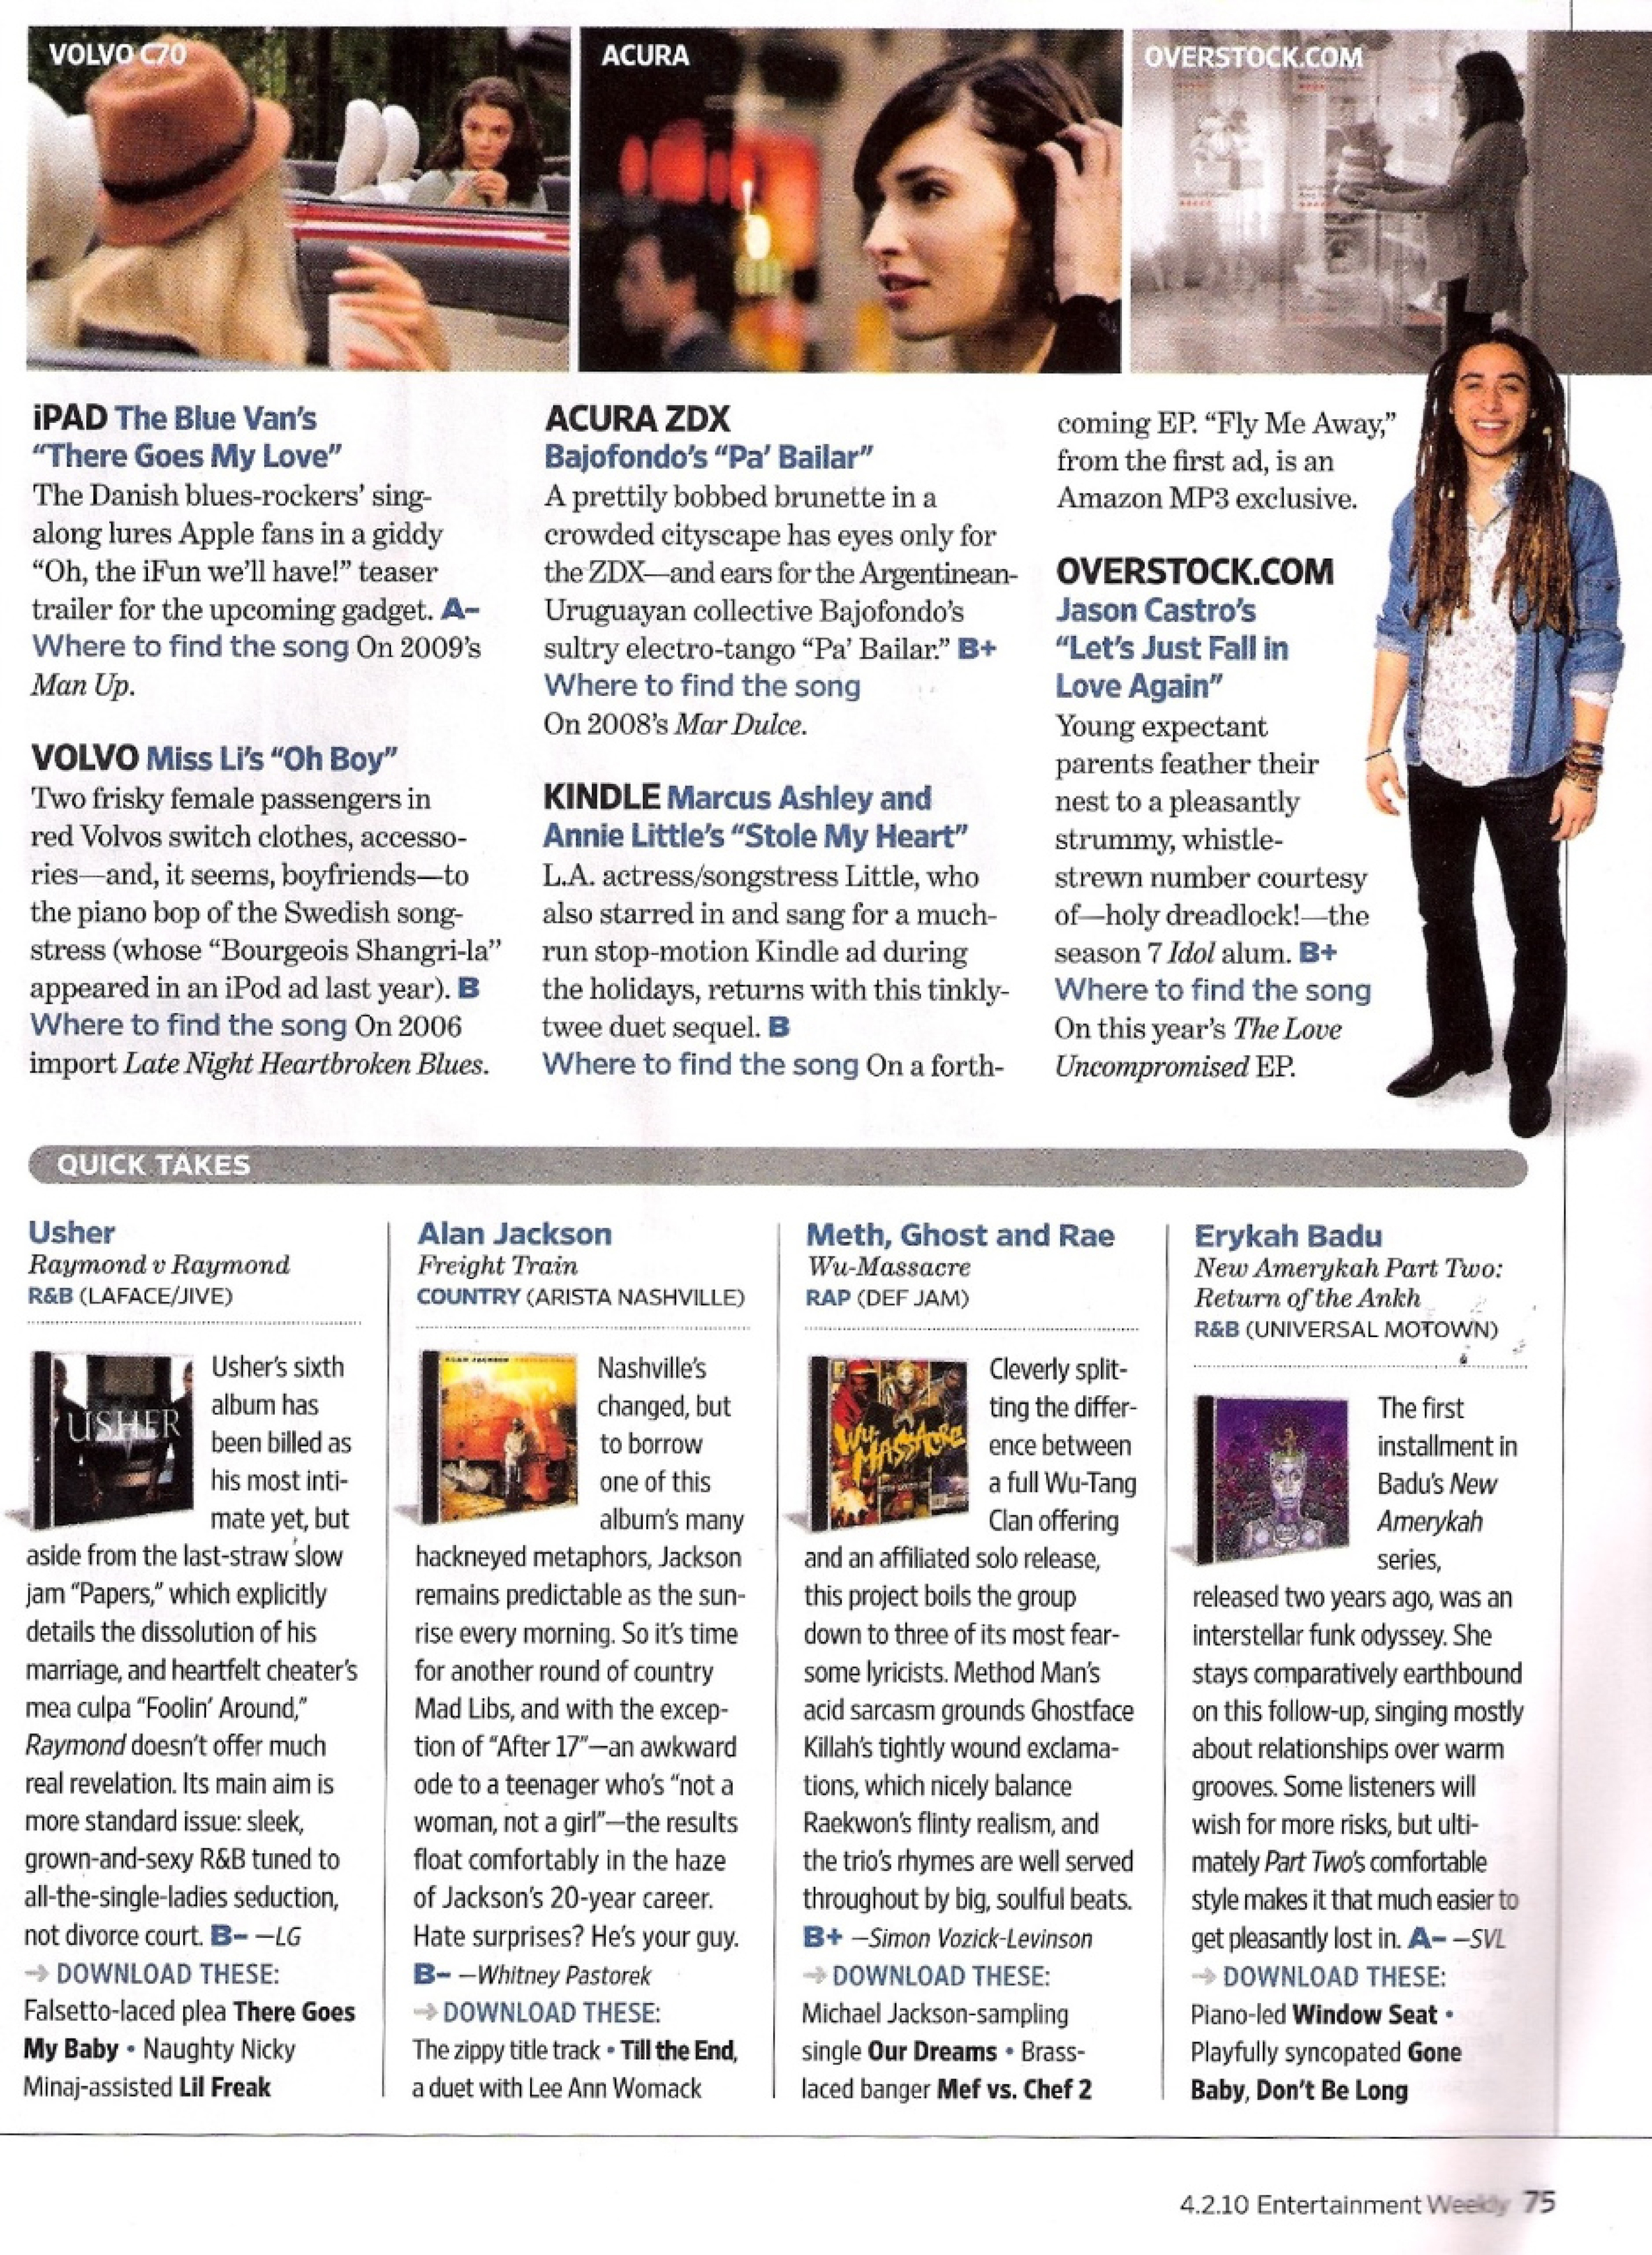 Entertainment Weekly Apr 2-2010 Ads That Rock-2.jpg